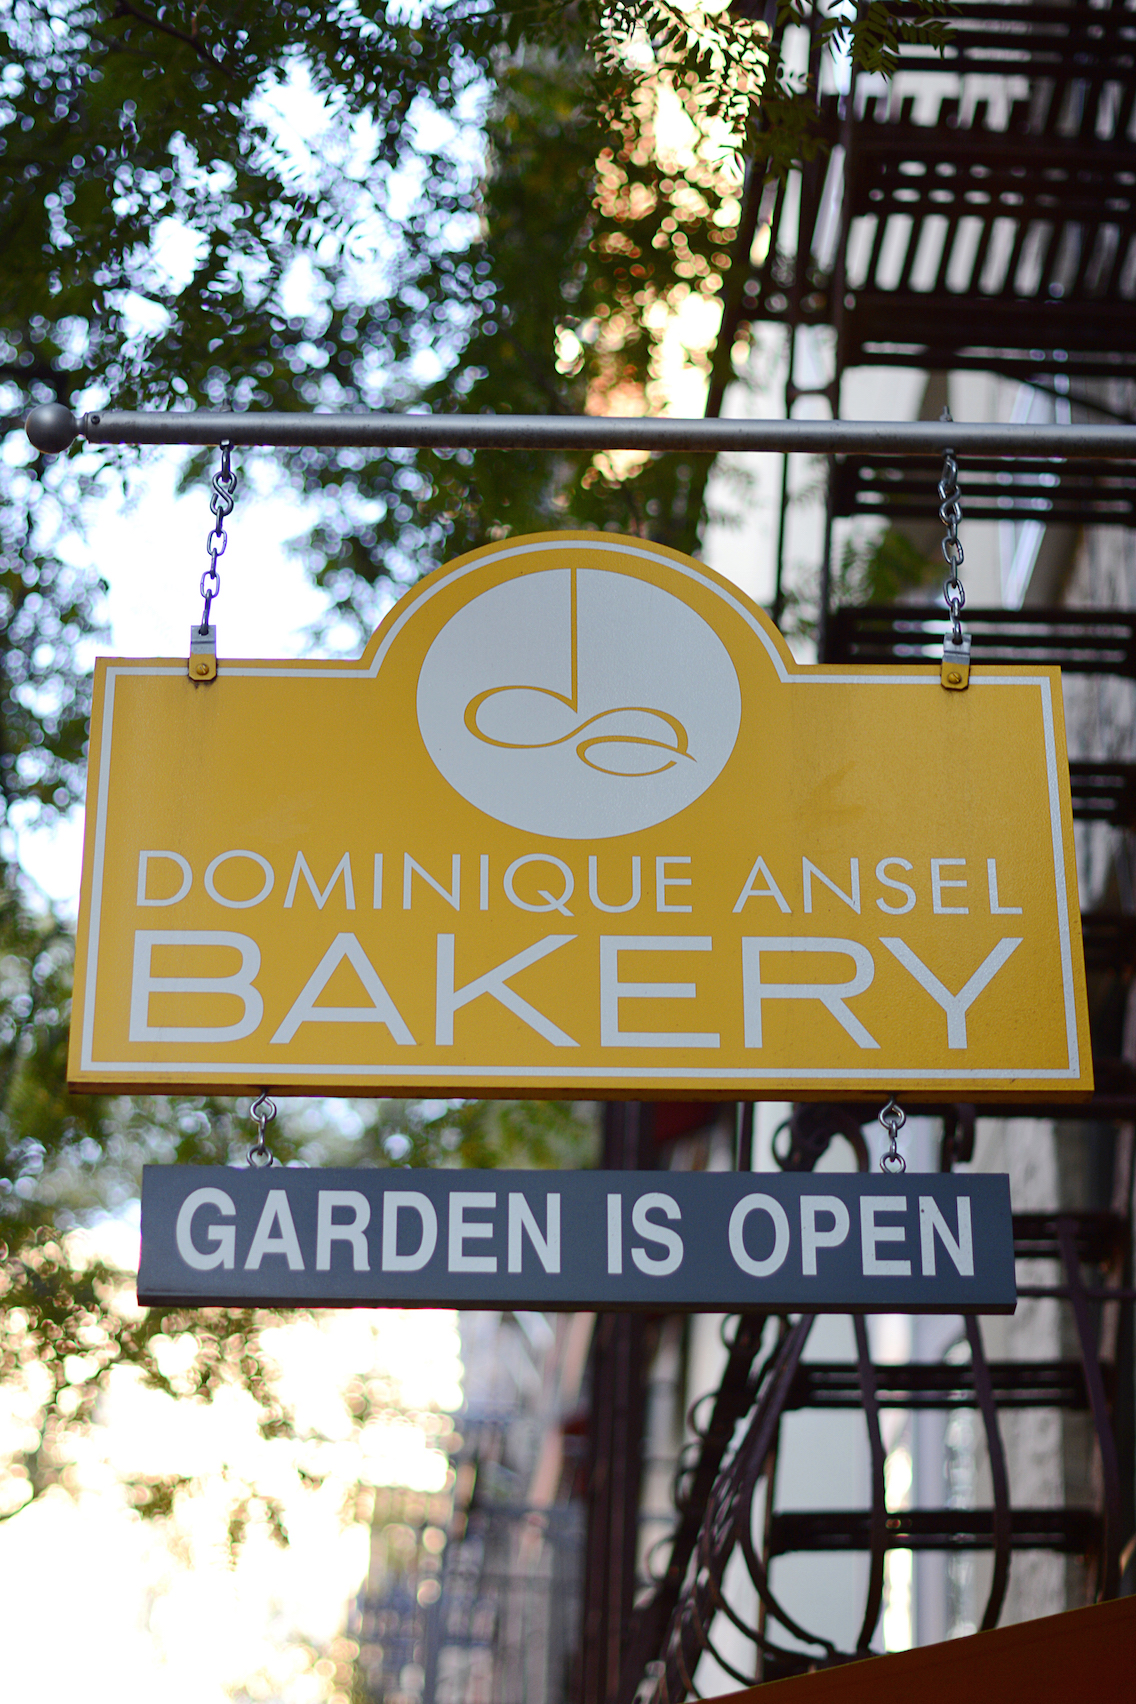 Dominique Ansel Bakery Soho NYC Cronut 1